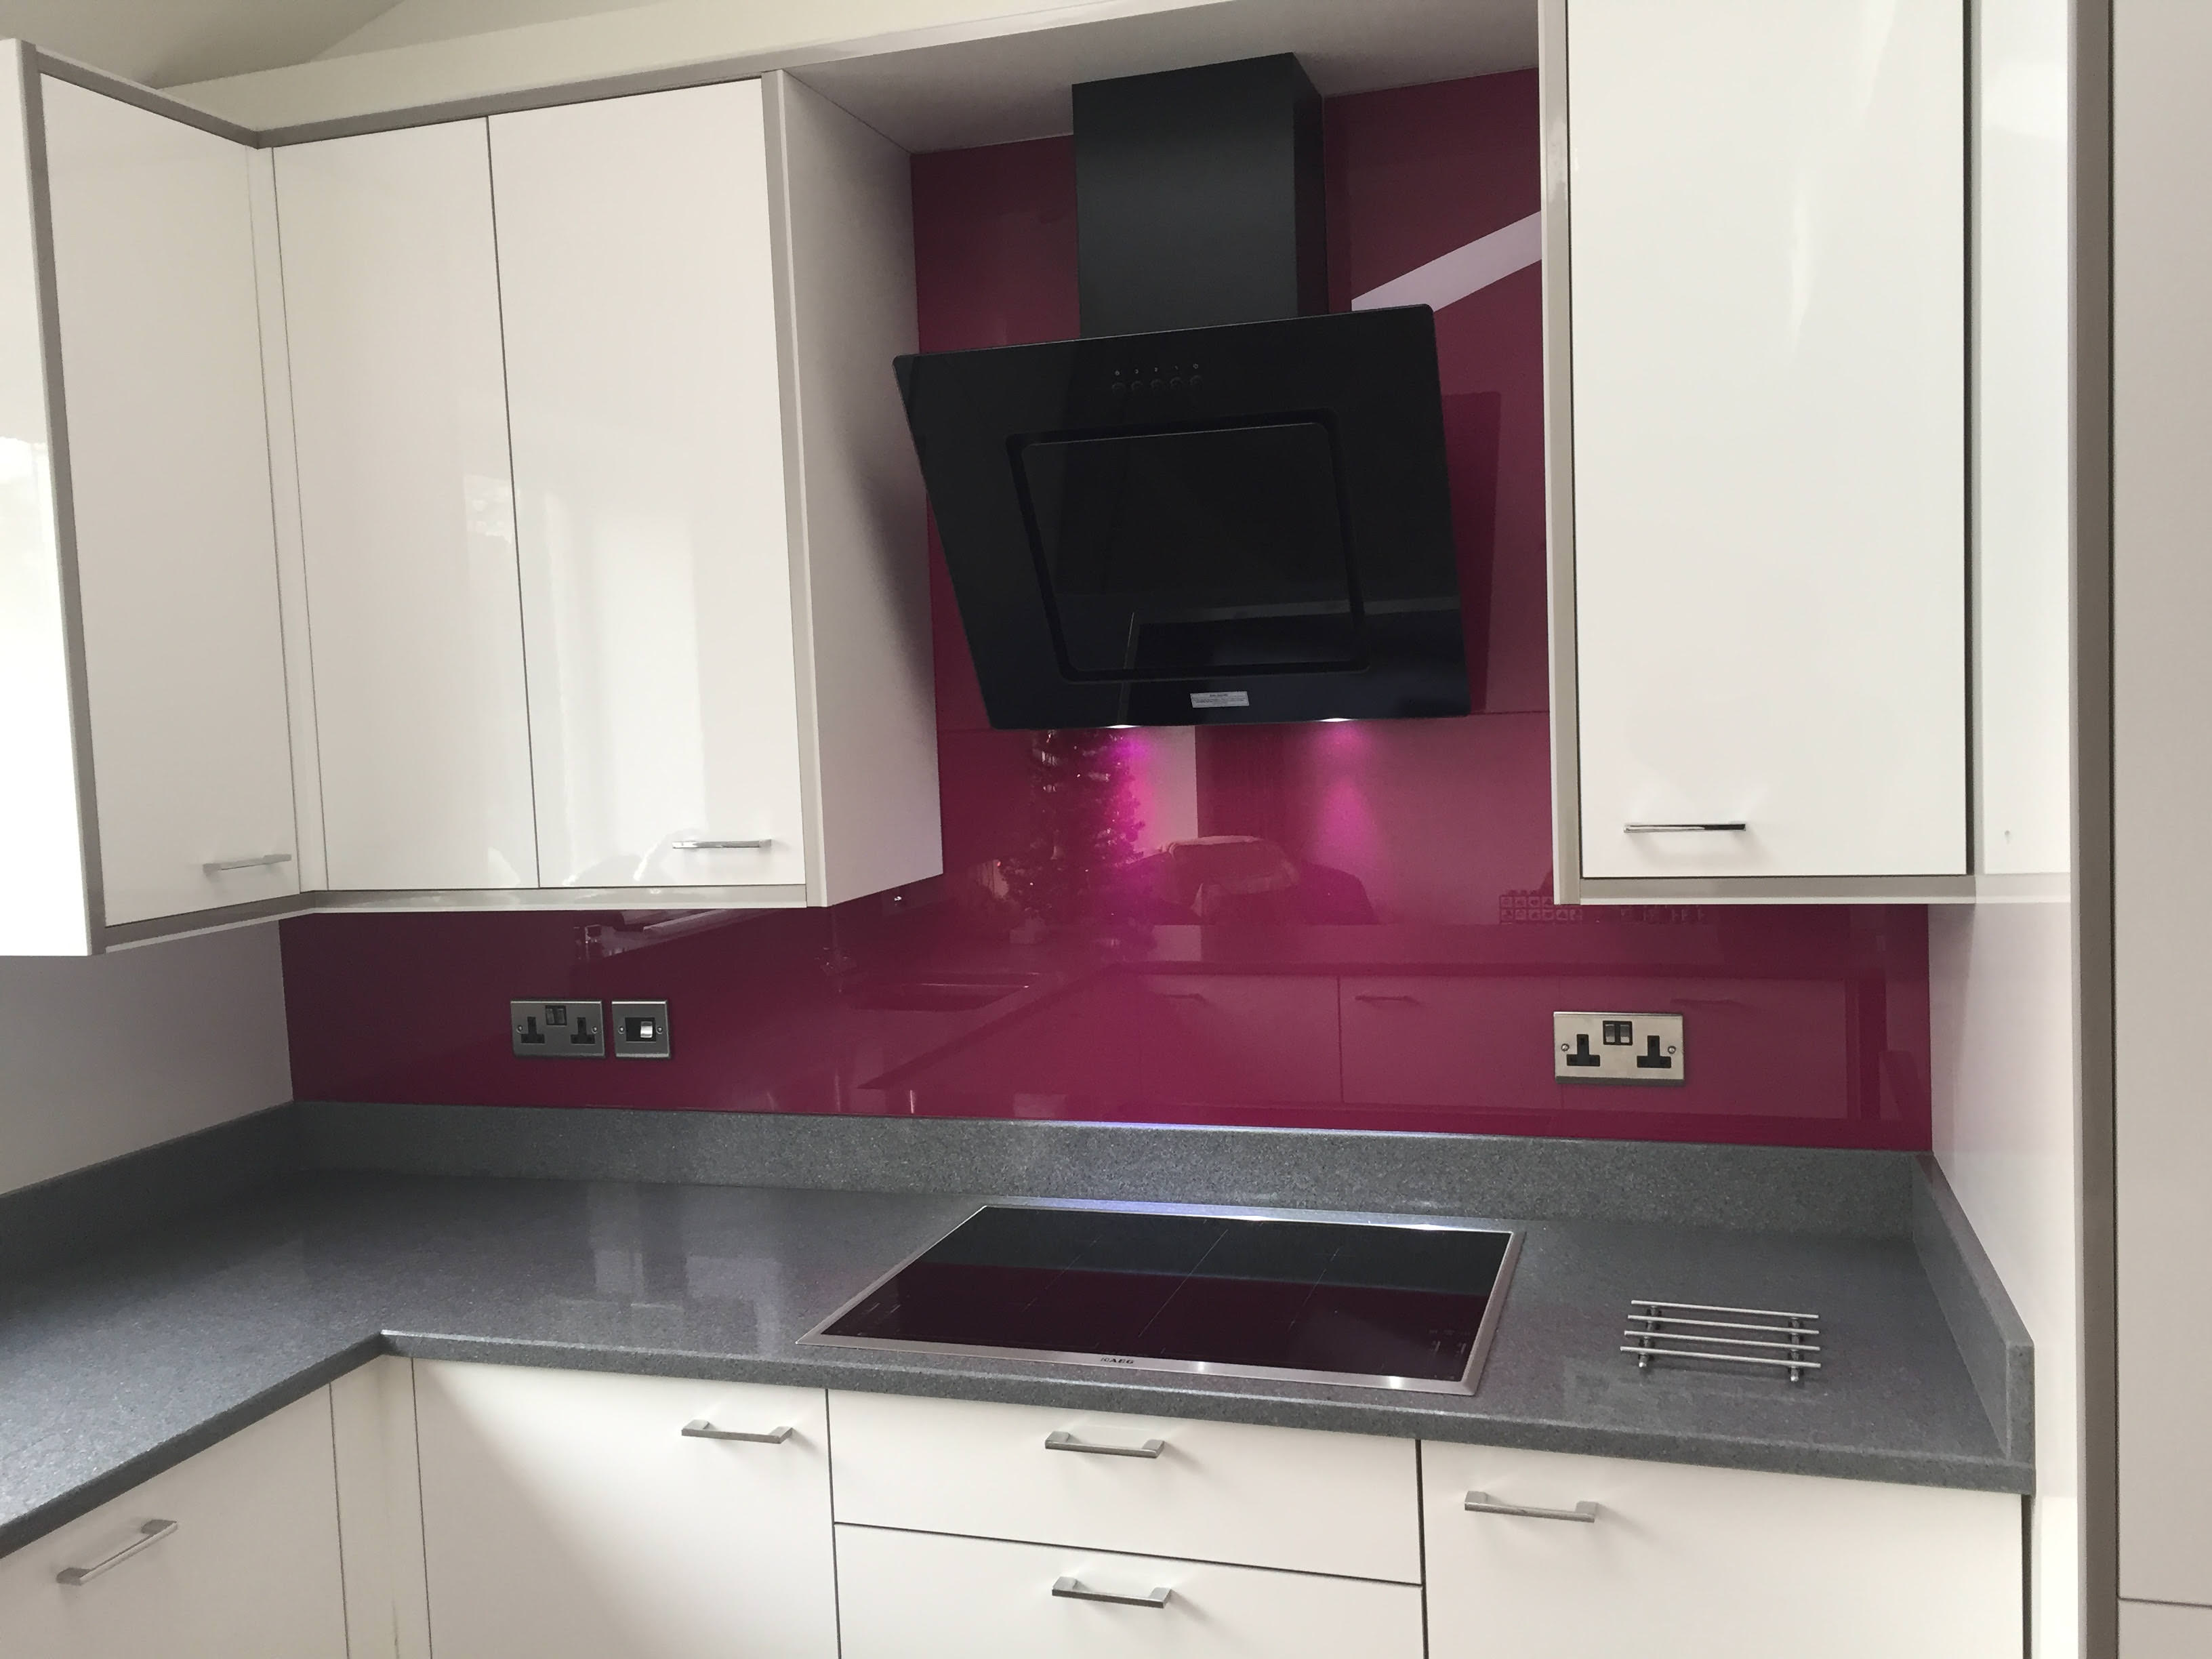 Bespoke glass splashbacks southampton hampshire - Splashback alternatives ...